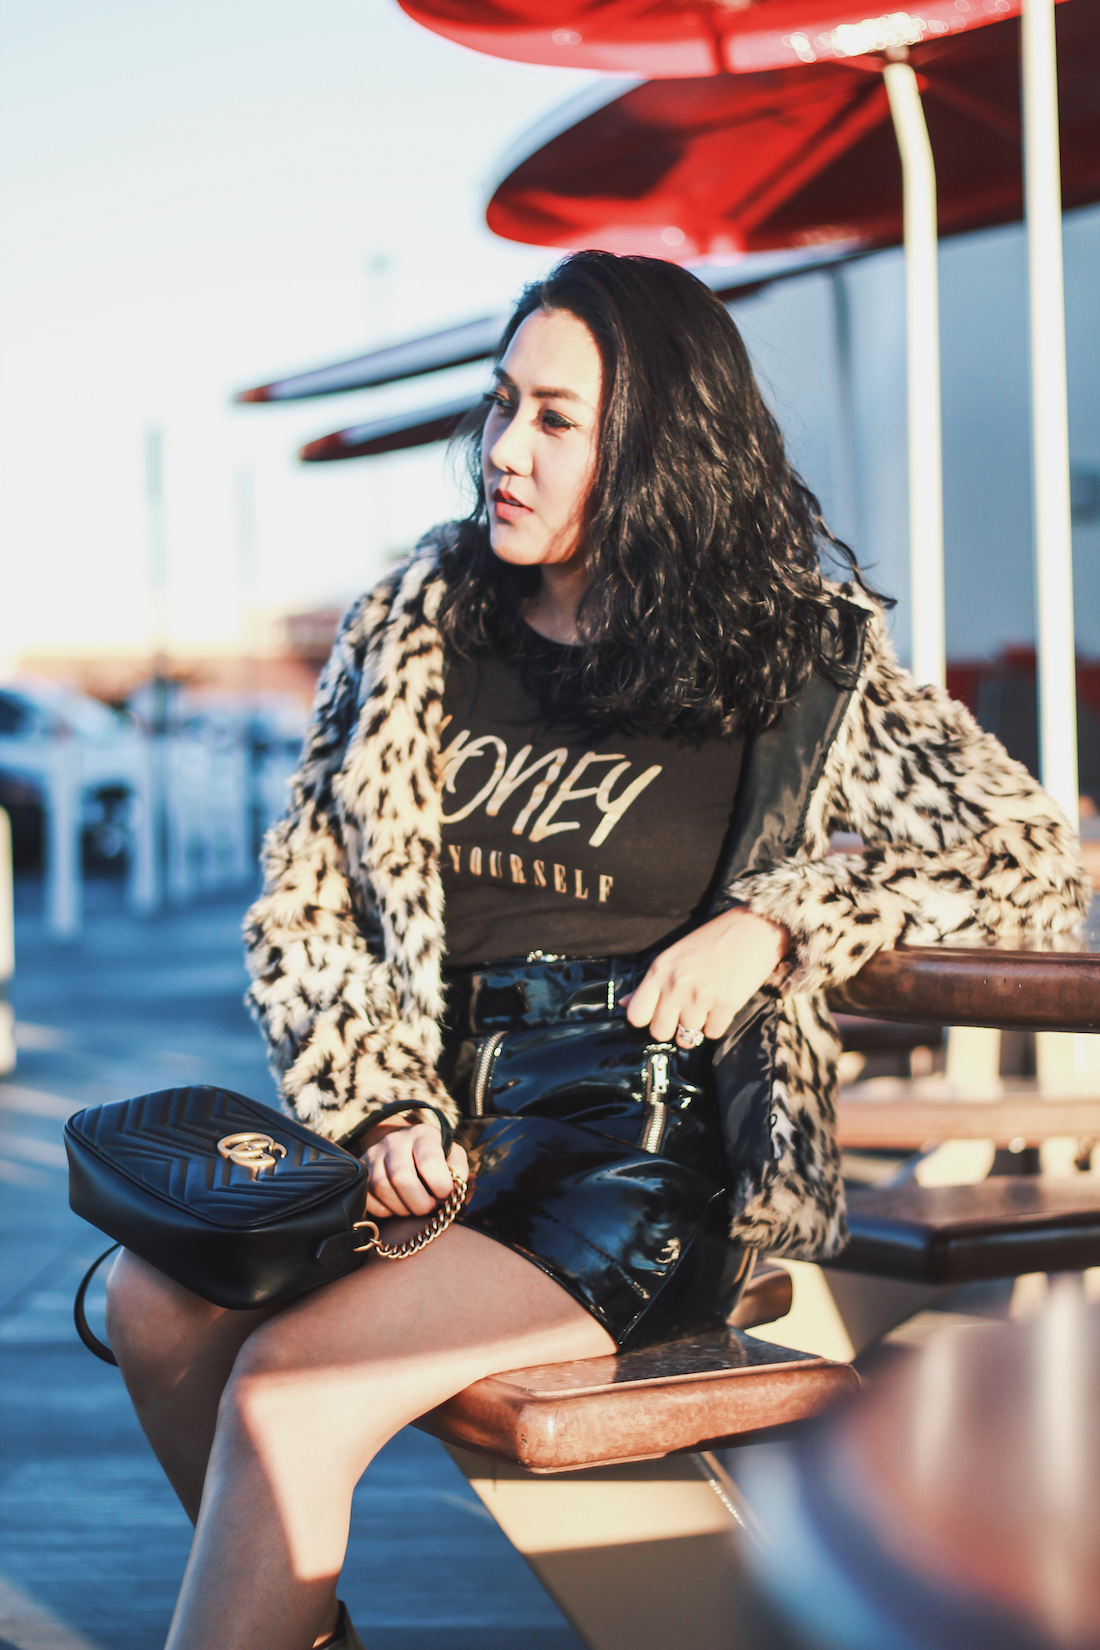 Winter-Outfit-Honey-Be-Yourself-Graphic-Tee-Fashion-Blogger